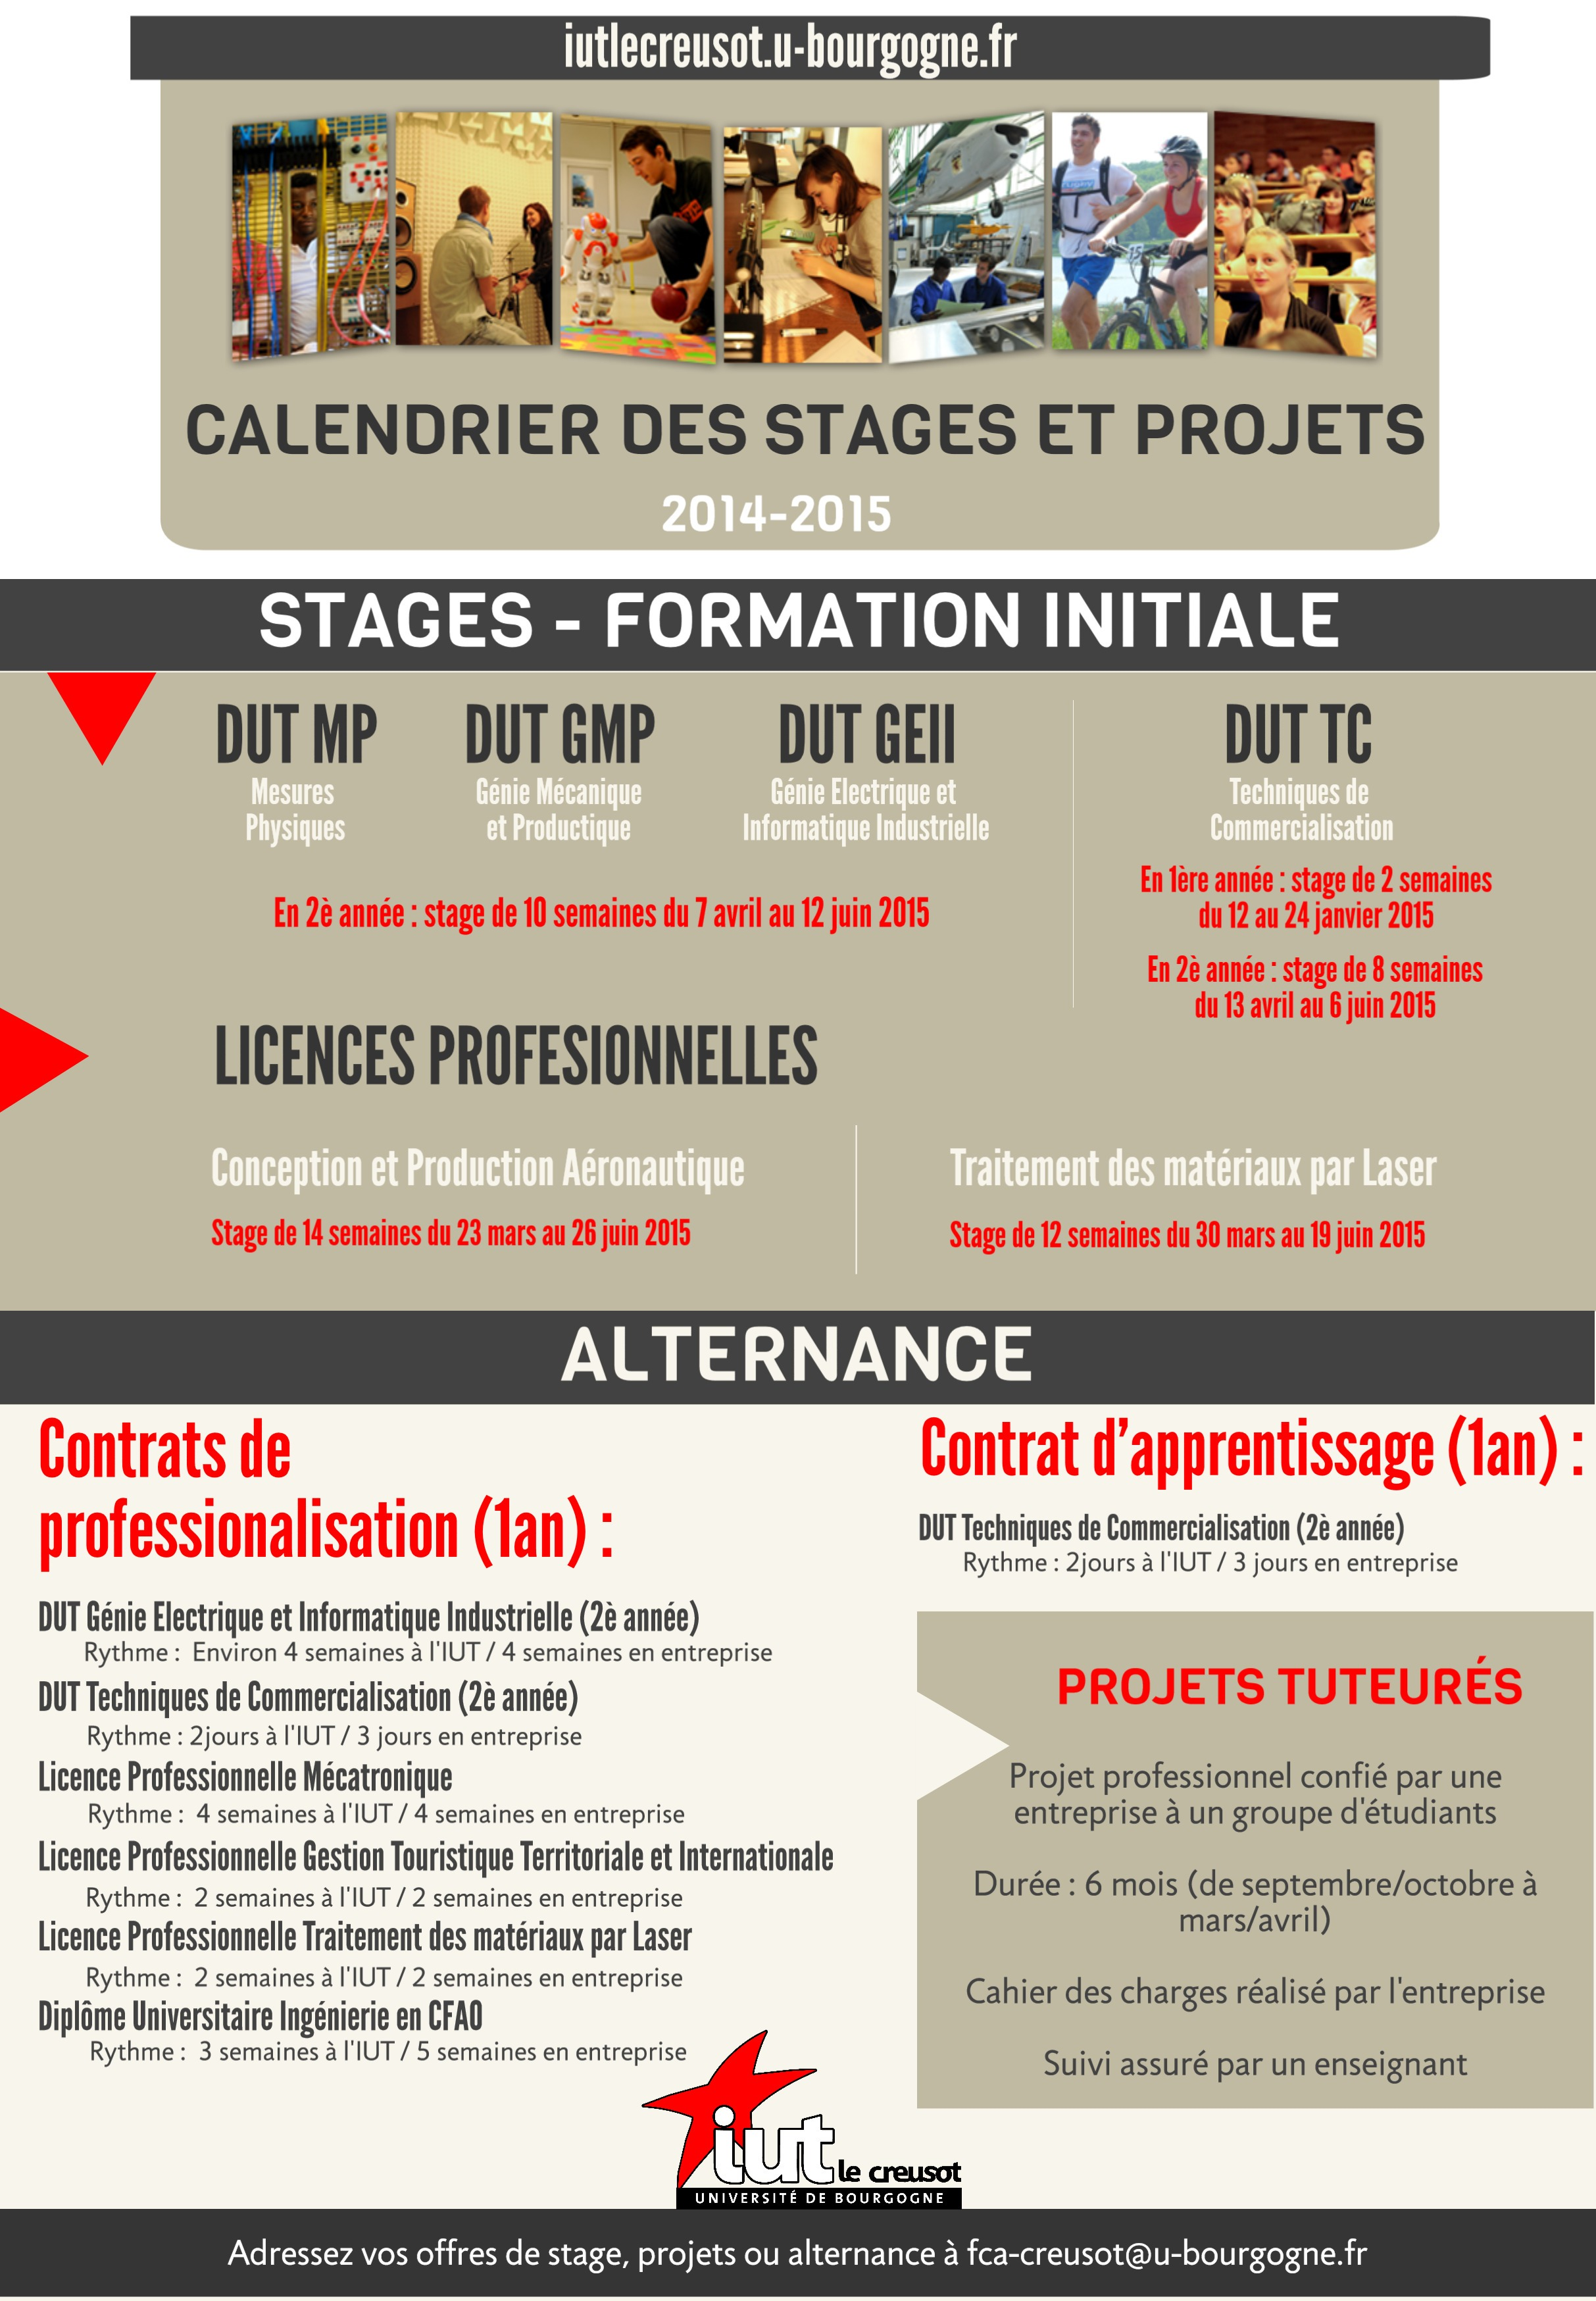 calendrier stages projets